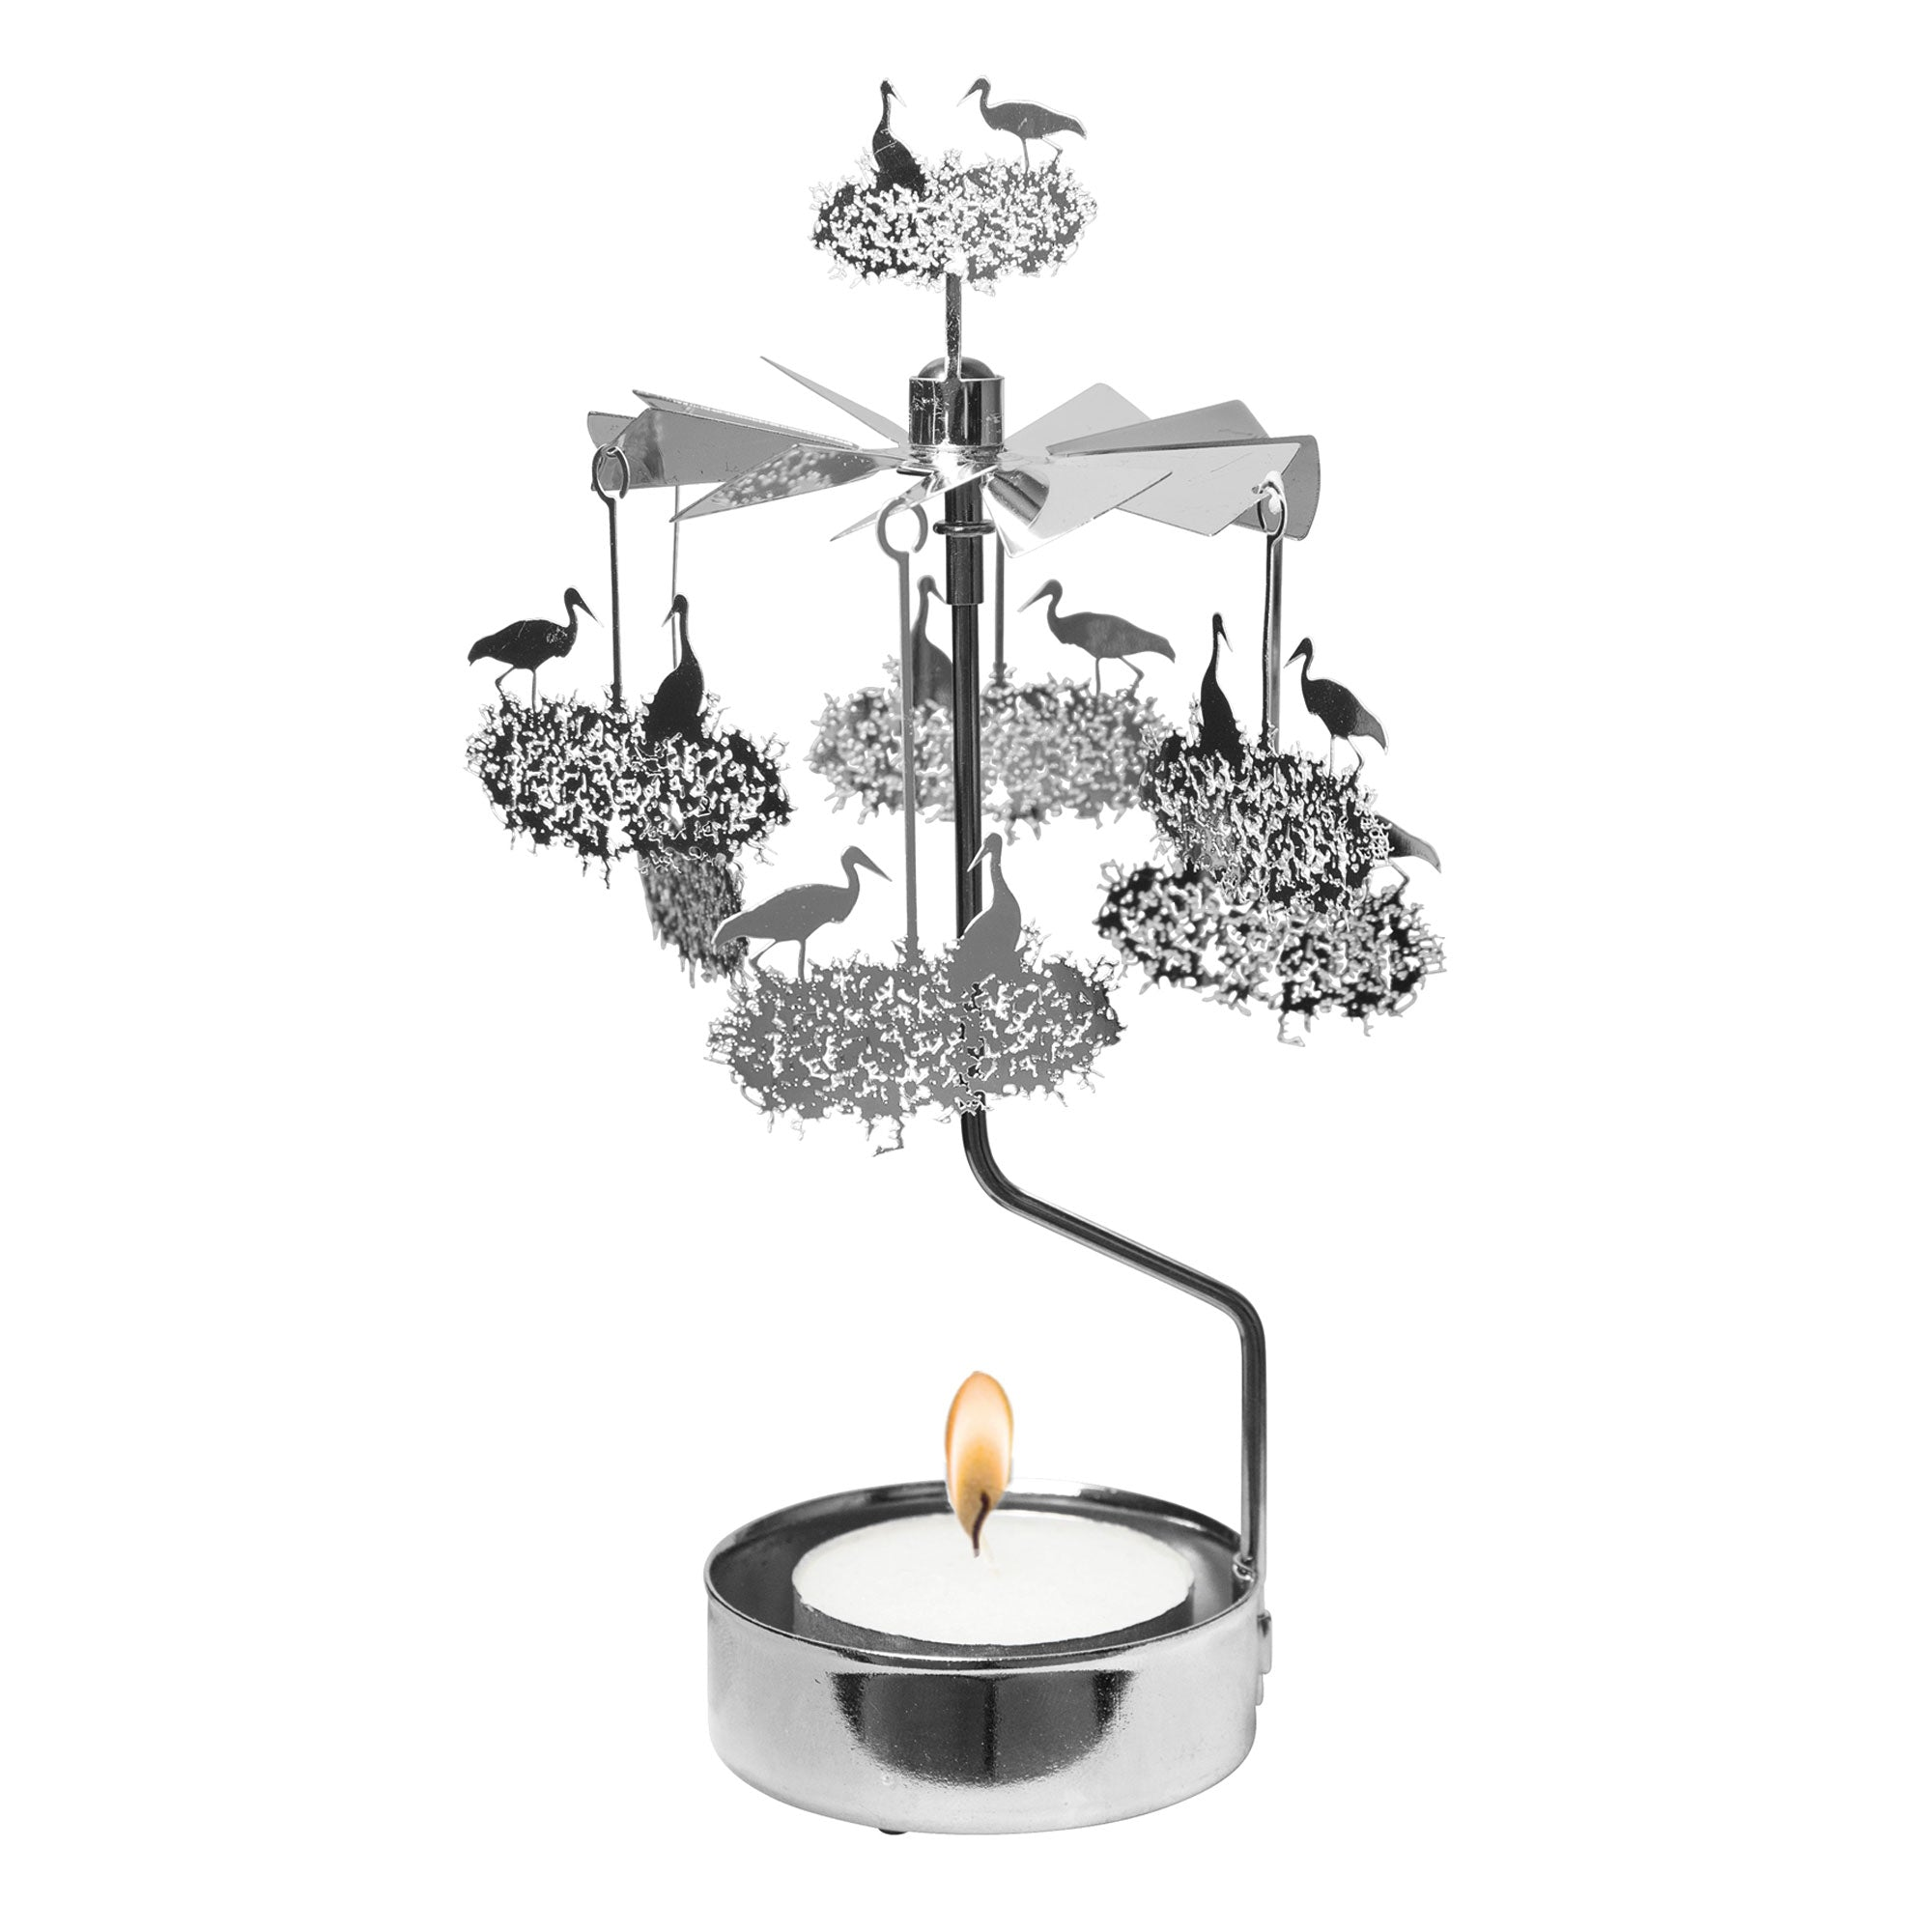 Stork Rotary Candle Holder - Northlight Homestore